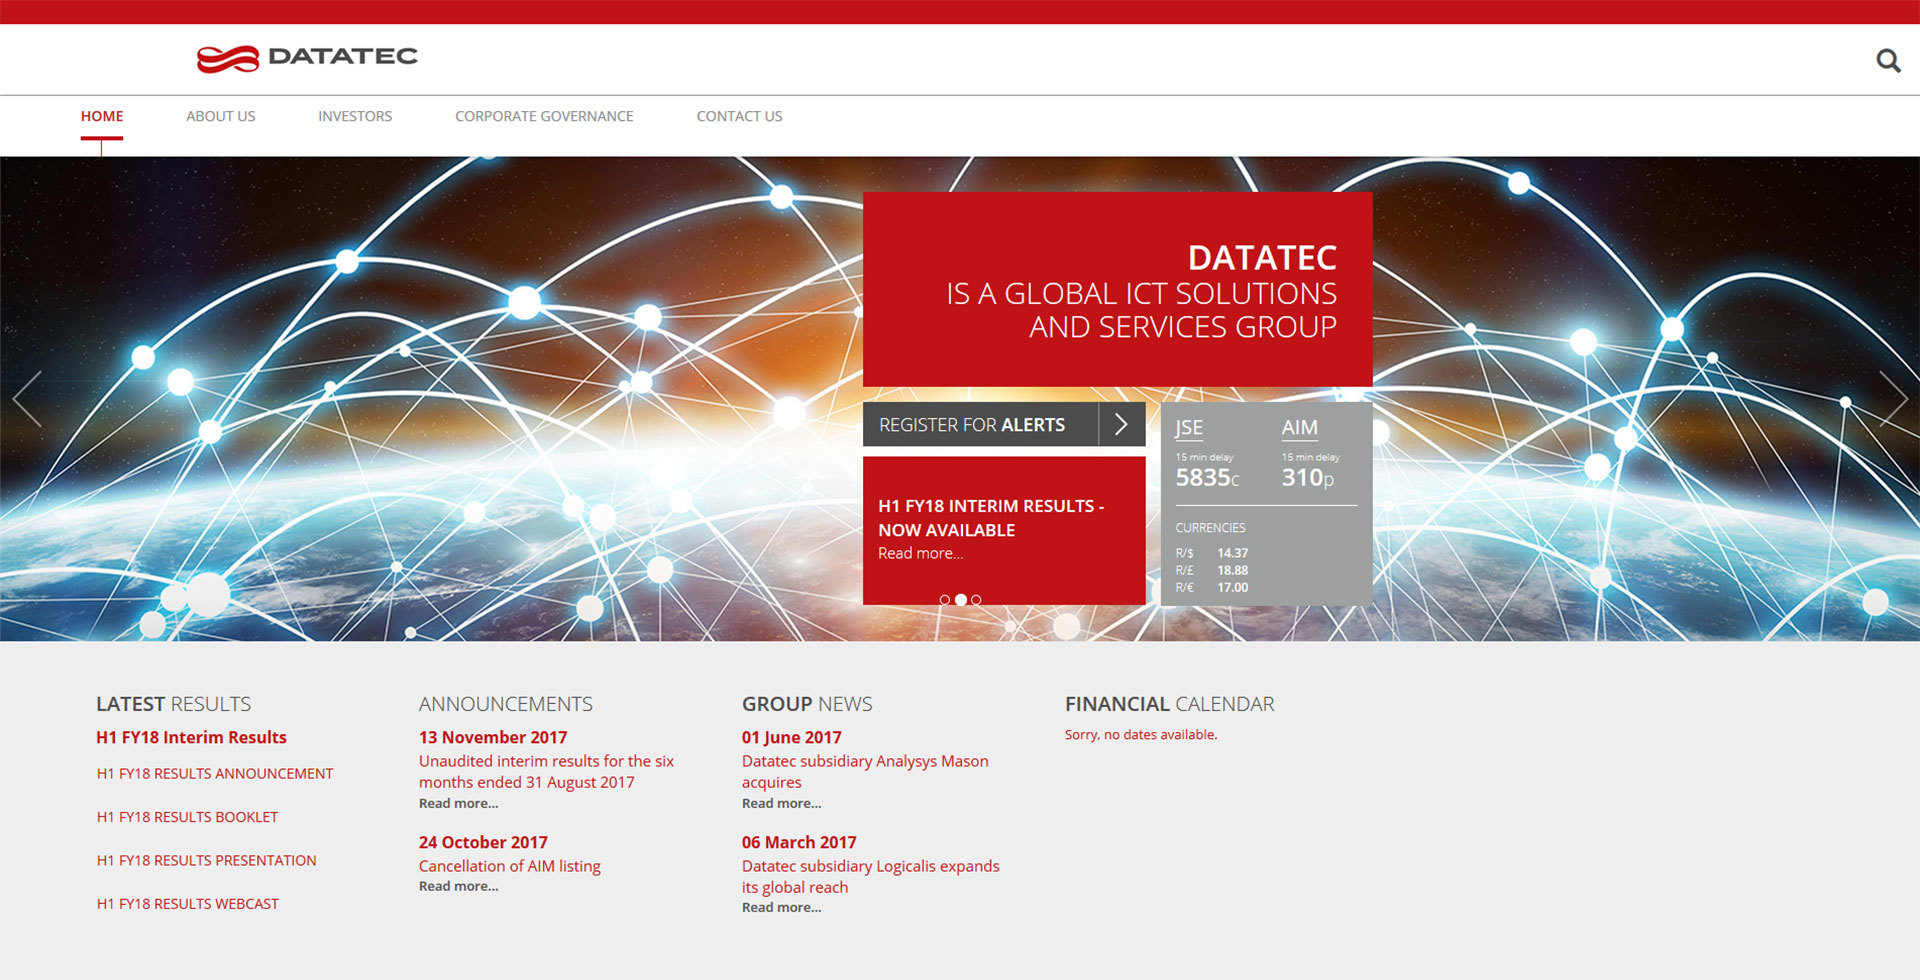 Datatec home